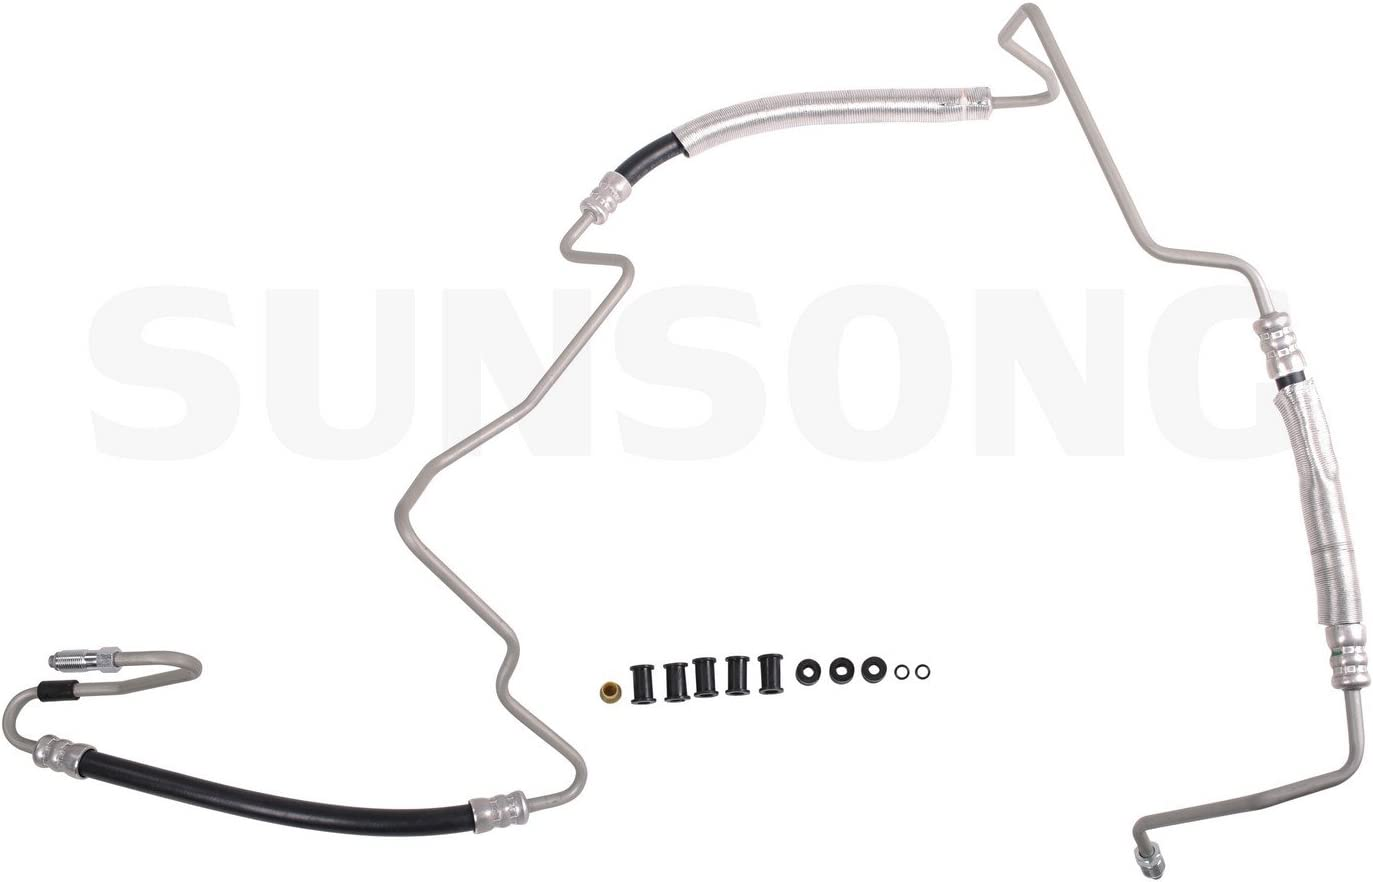 Power Steering Pressure Line Hose Assembly-RWD 3402553 fits 93-94 Ford Aerostar